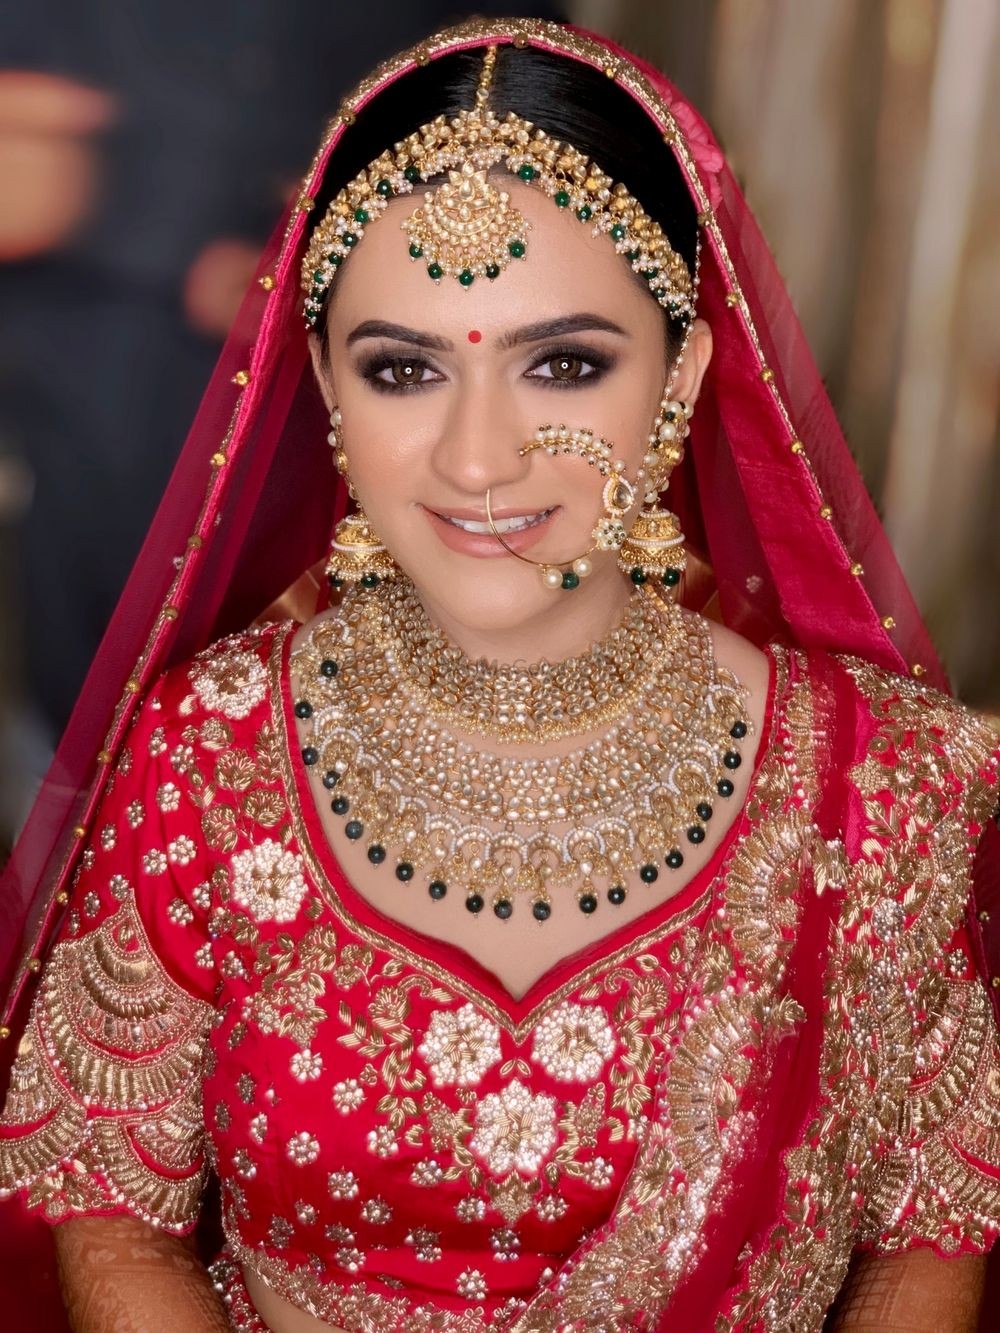 Photo of Bride in stunning gold jewellery.